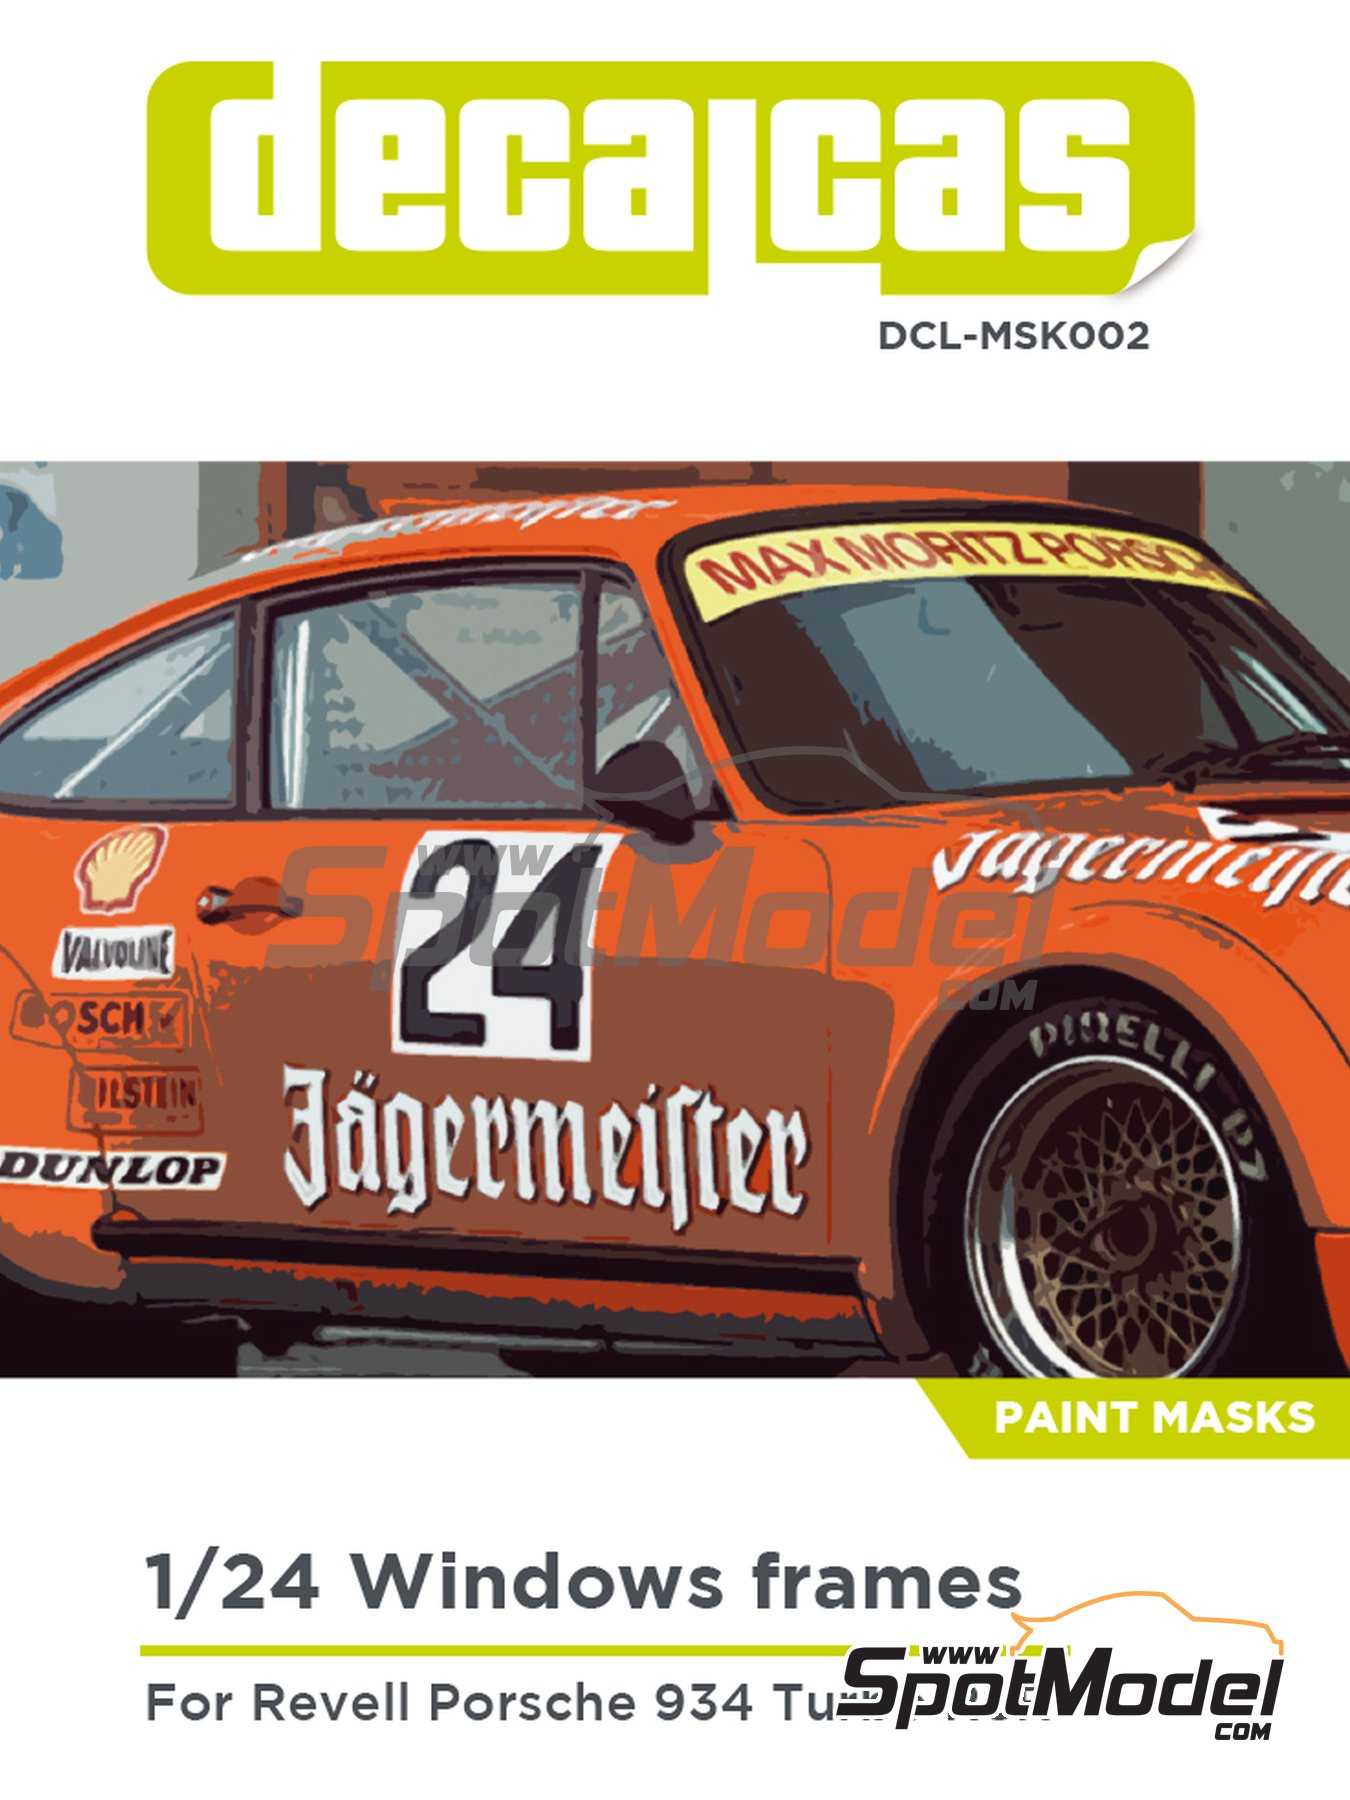 Porsche 934 Turbo RSR Group 4 | Window frame paint masks in 1/24 scale manufactured by Decalcas (ref. DCL-MSK002) image